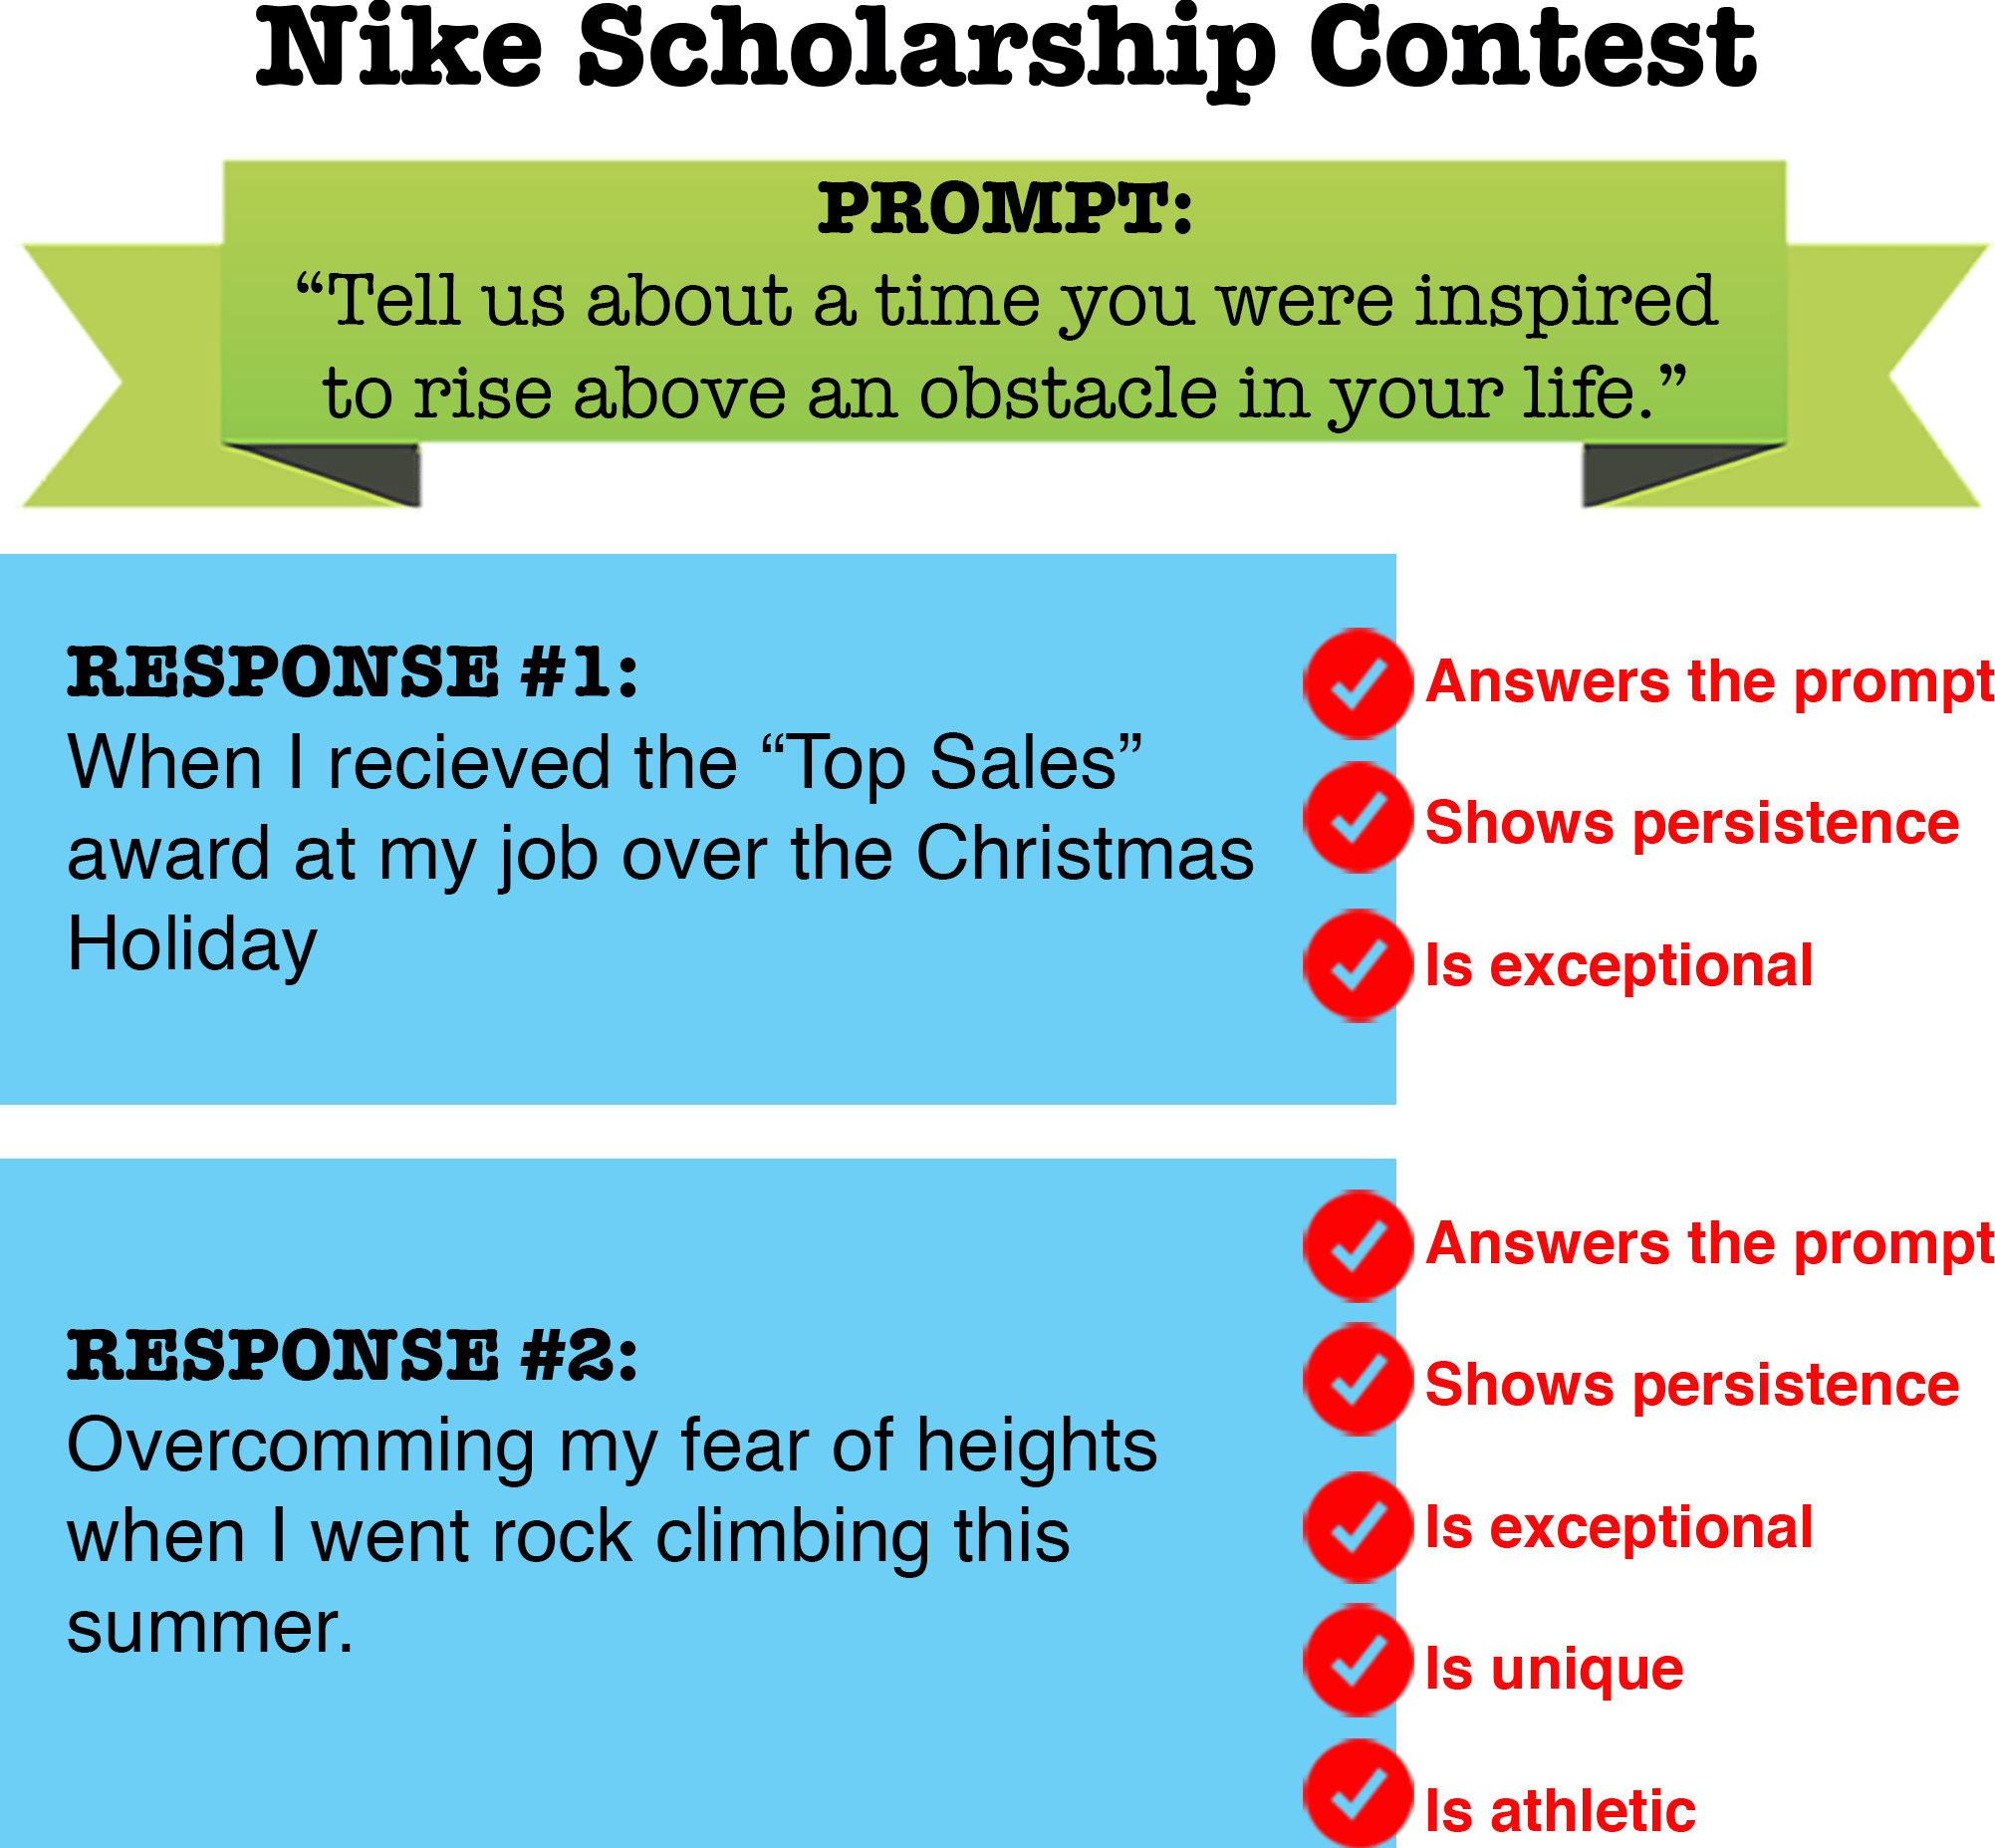 003 Essay Example Scholarship Contest Contests For College Students Scholarships Nikes High School Astounding 2019 Middle Full